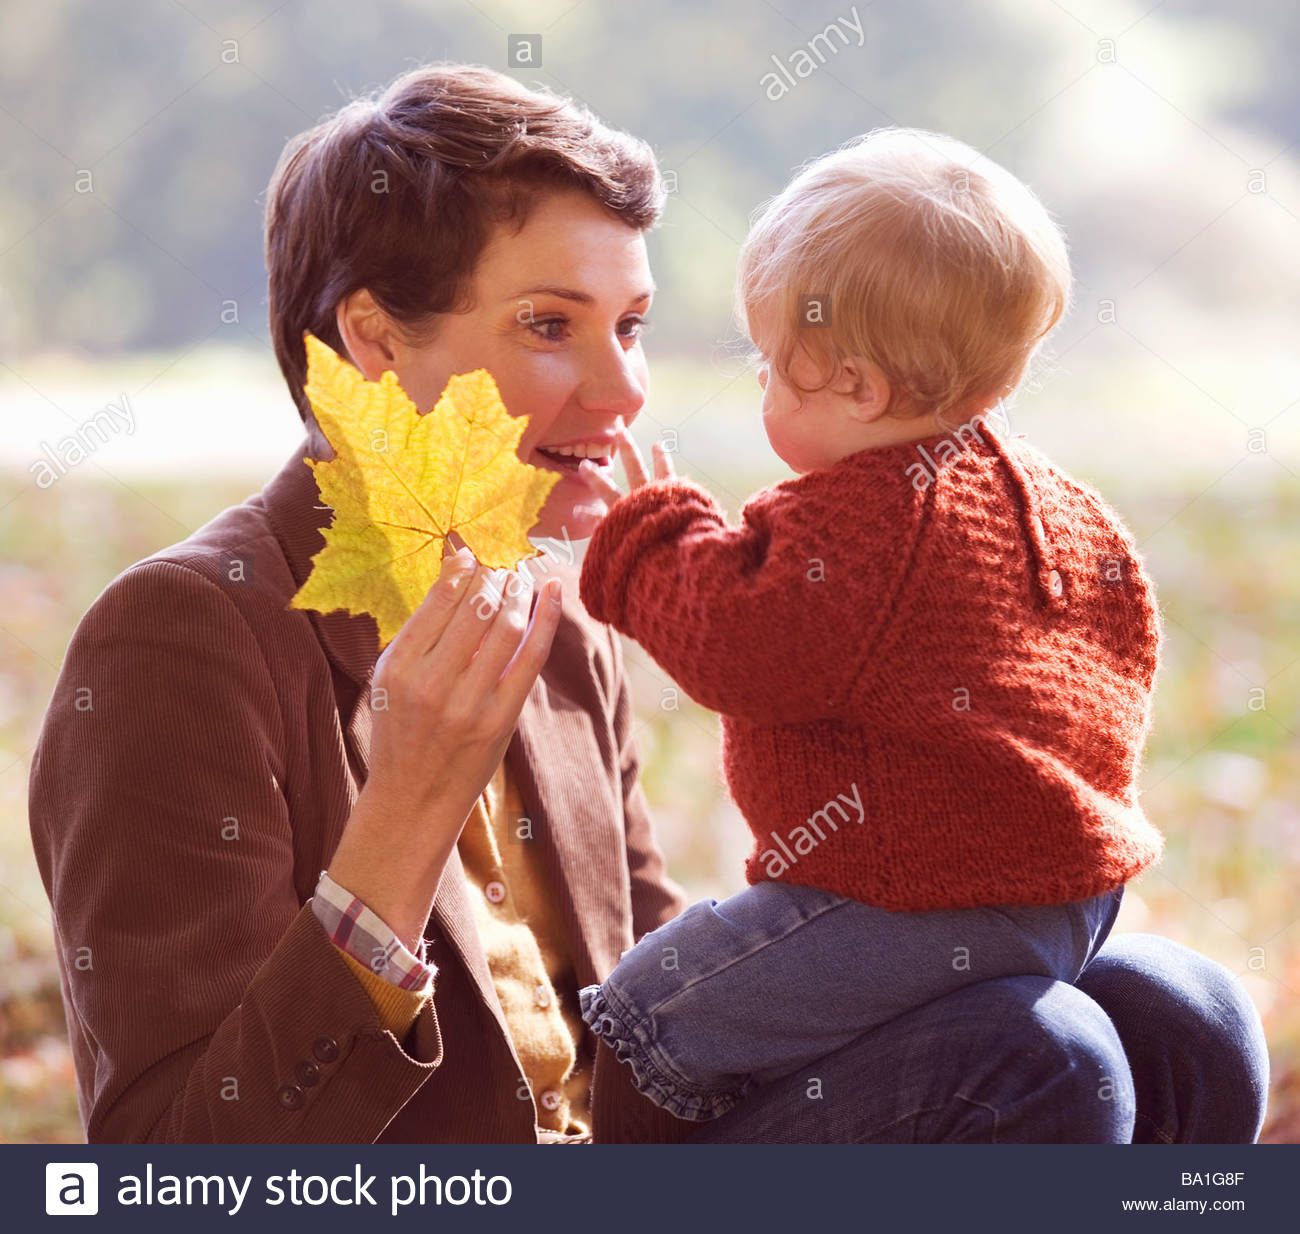 A young mother showing an autumn leaf to her baby Stock Photo